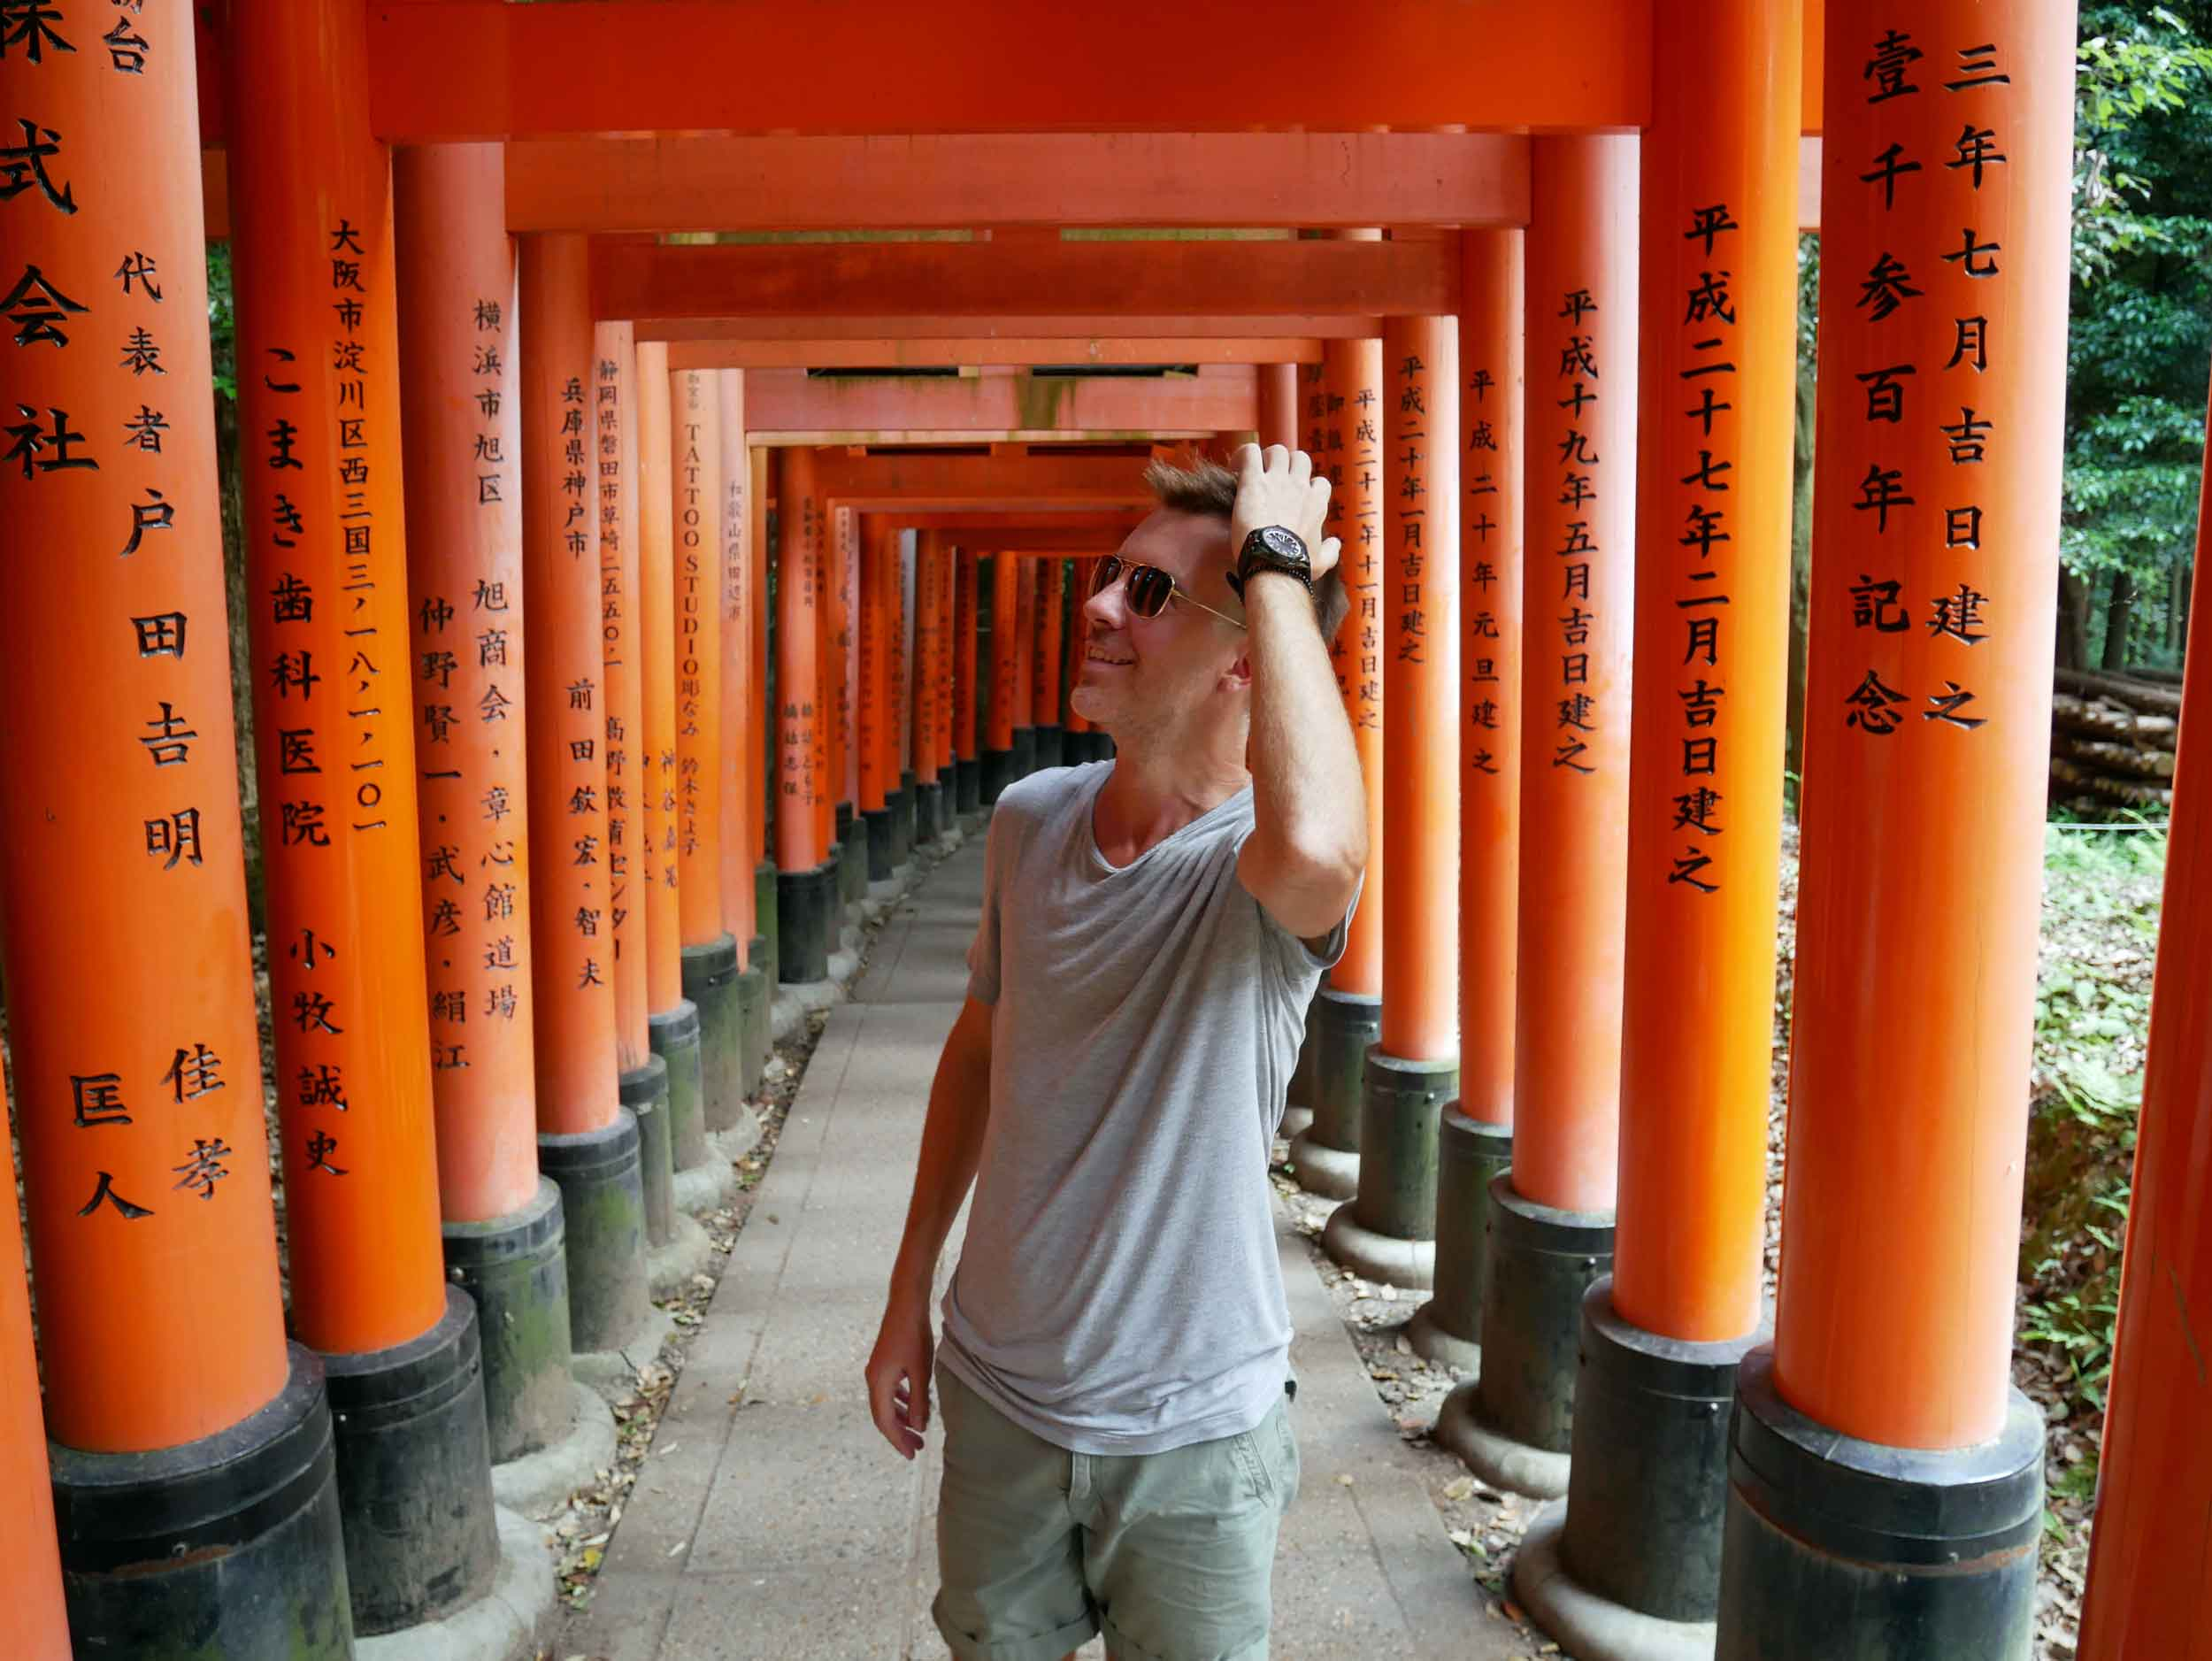 Trey tries to understand all the wishes of good fortune by the many businesses and merchants who've contributed to the Inari gates.